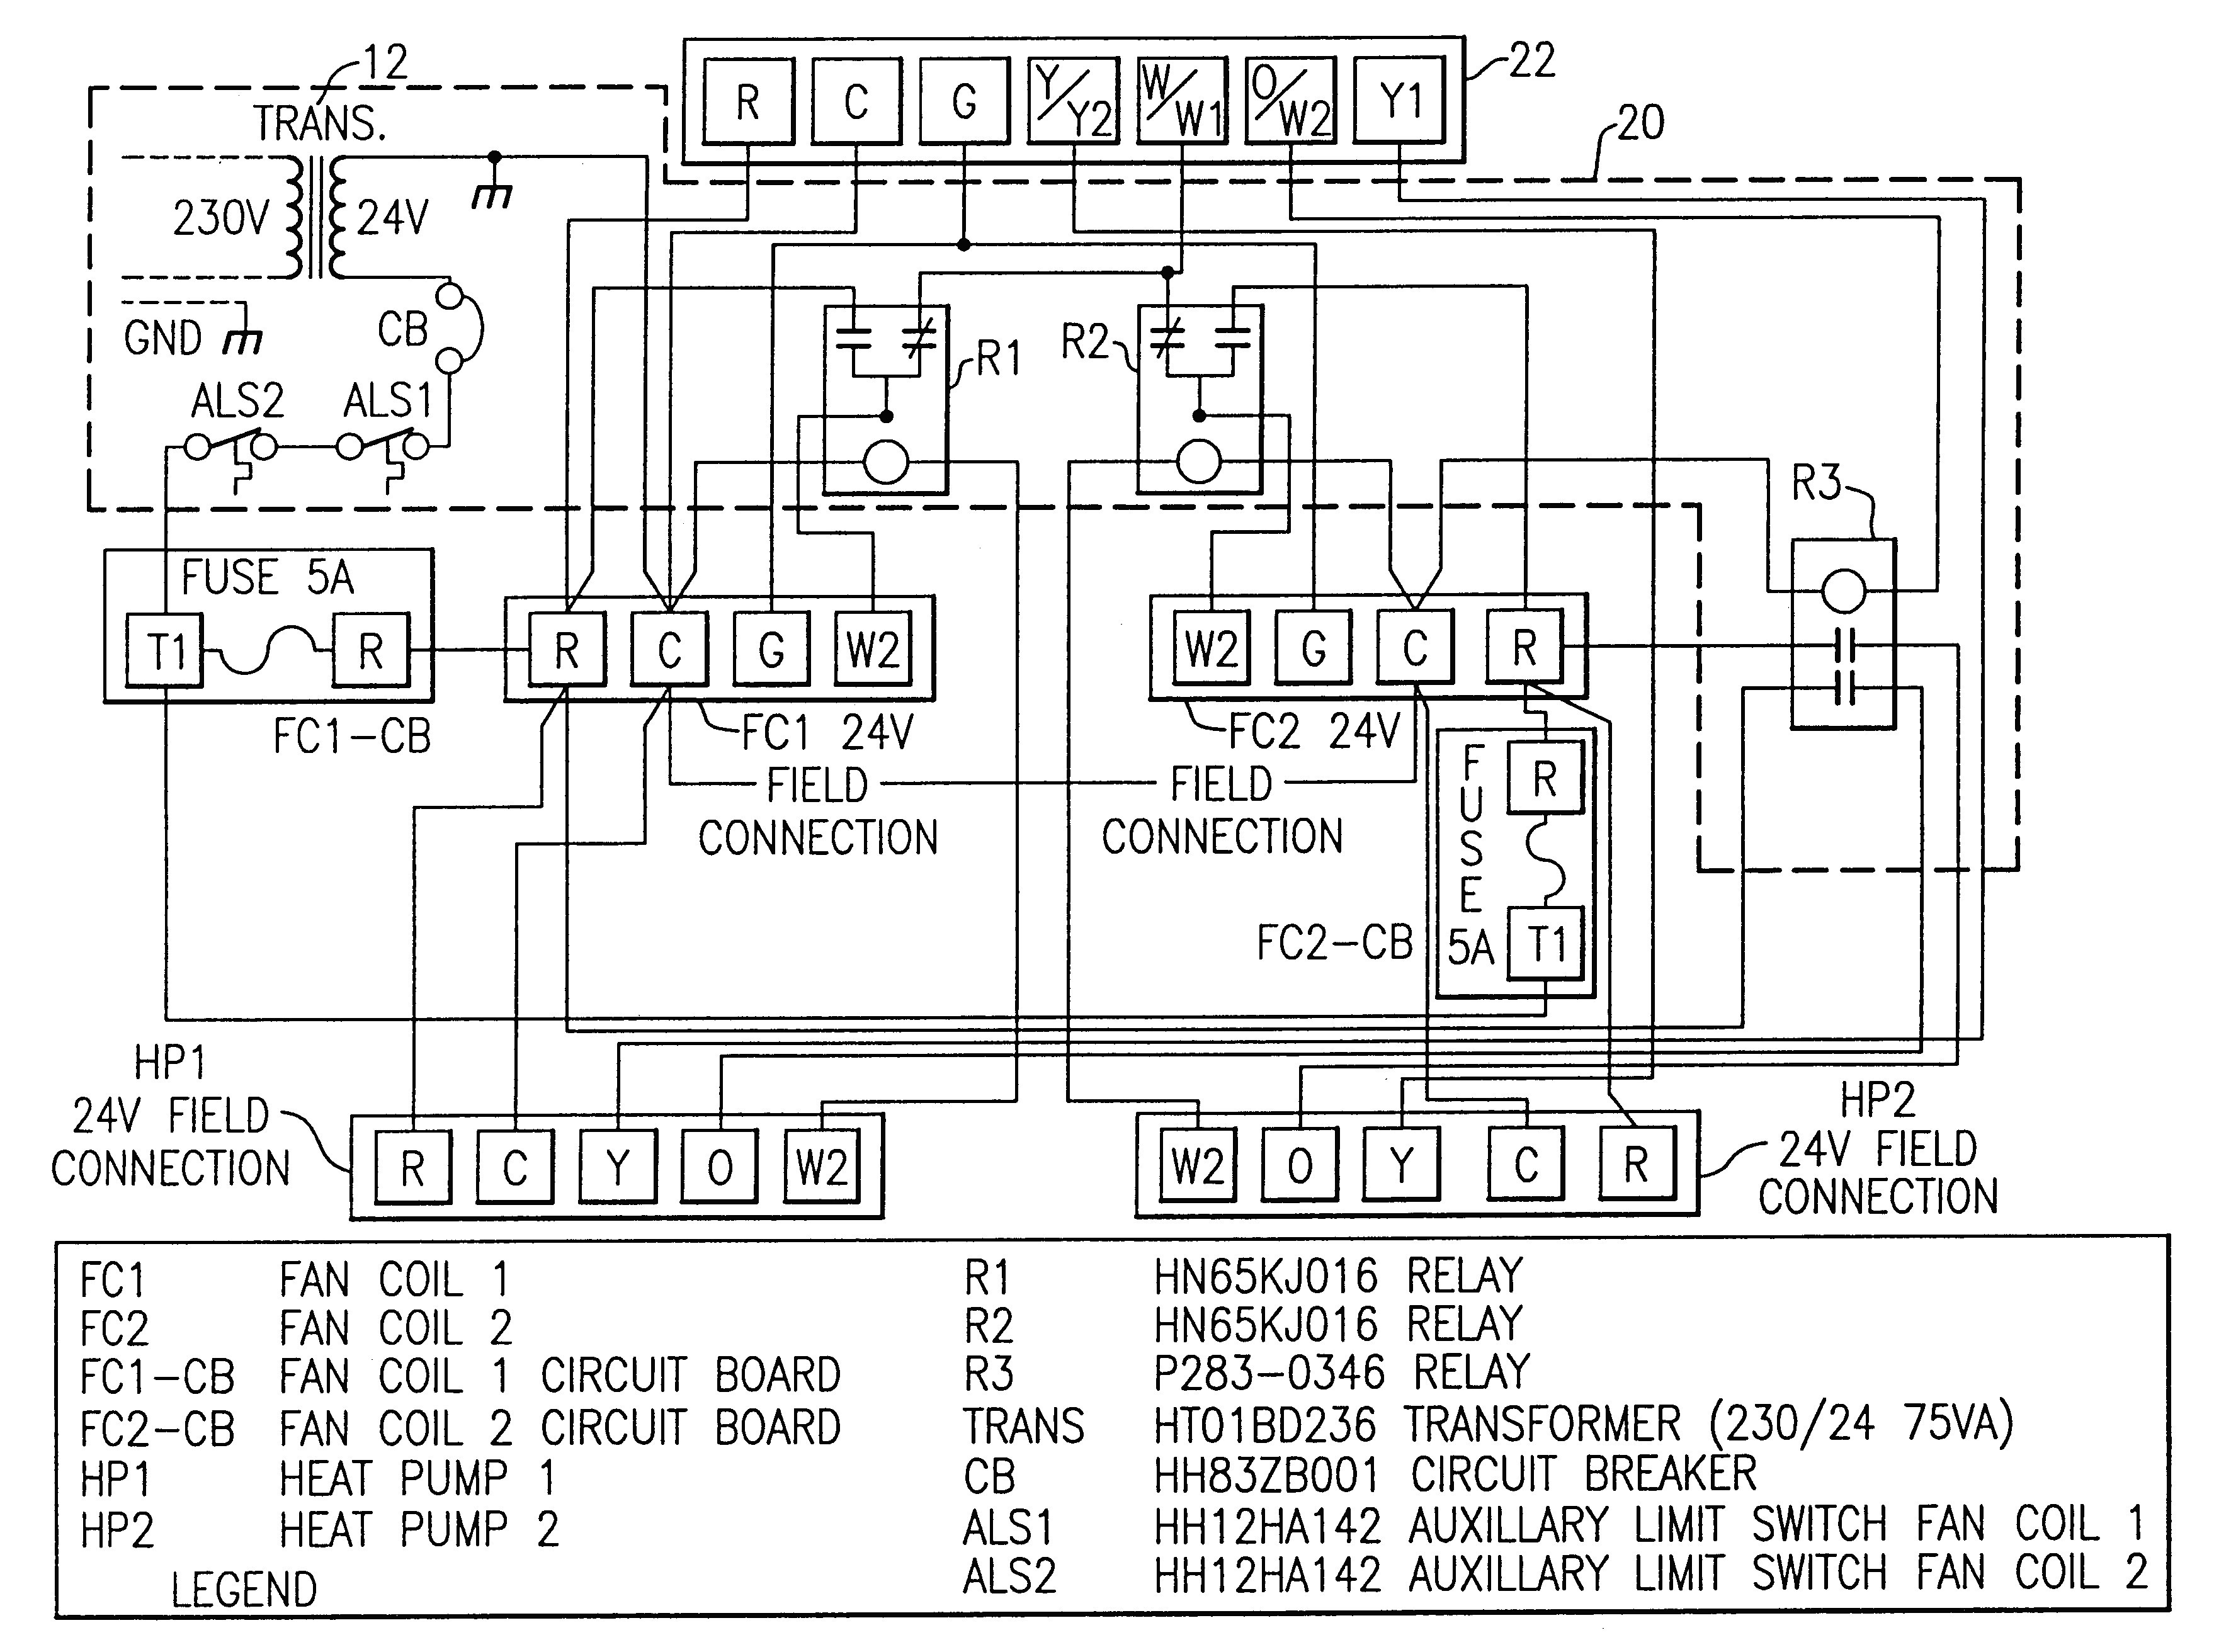 small resolution of wiring diagram 49 kb auto electrical wiring diagram wiring diagram 49 kb